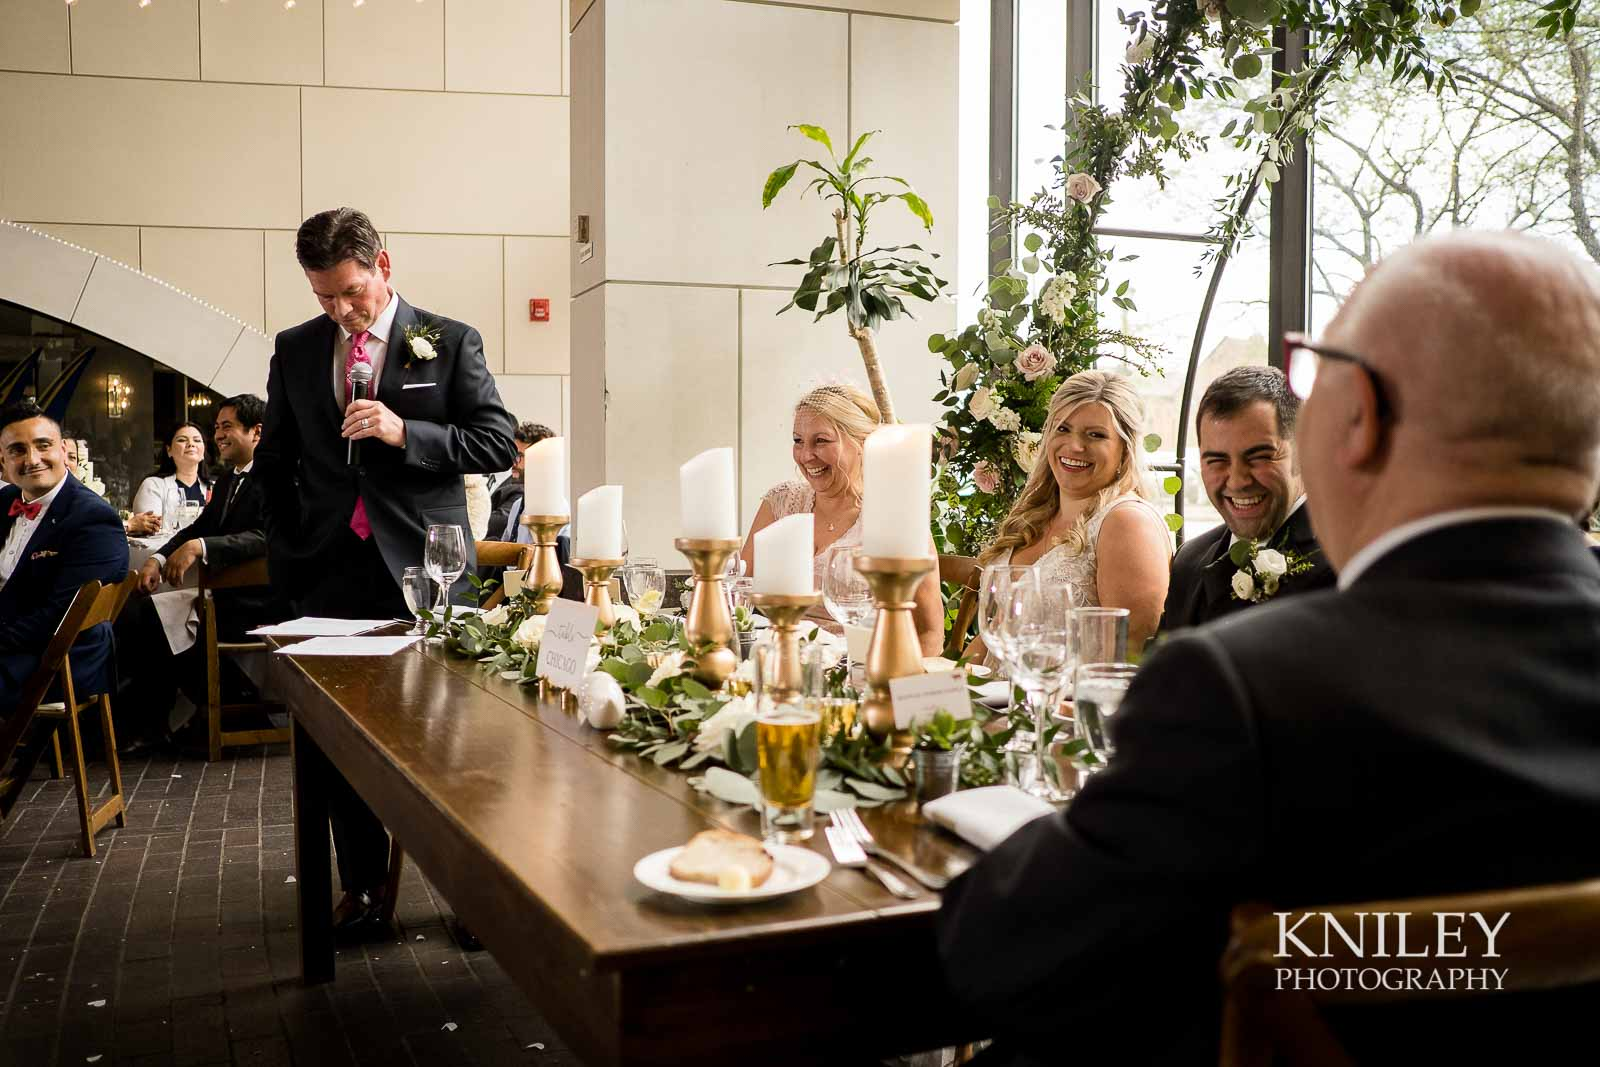 52-Max-of-Eastman-Wedding-and-Reception-Rochester-NY-Kniley-Photography.jpg